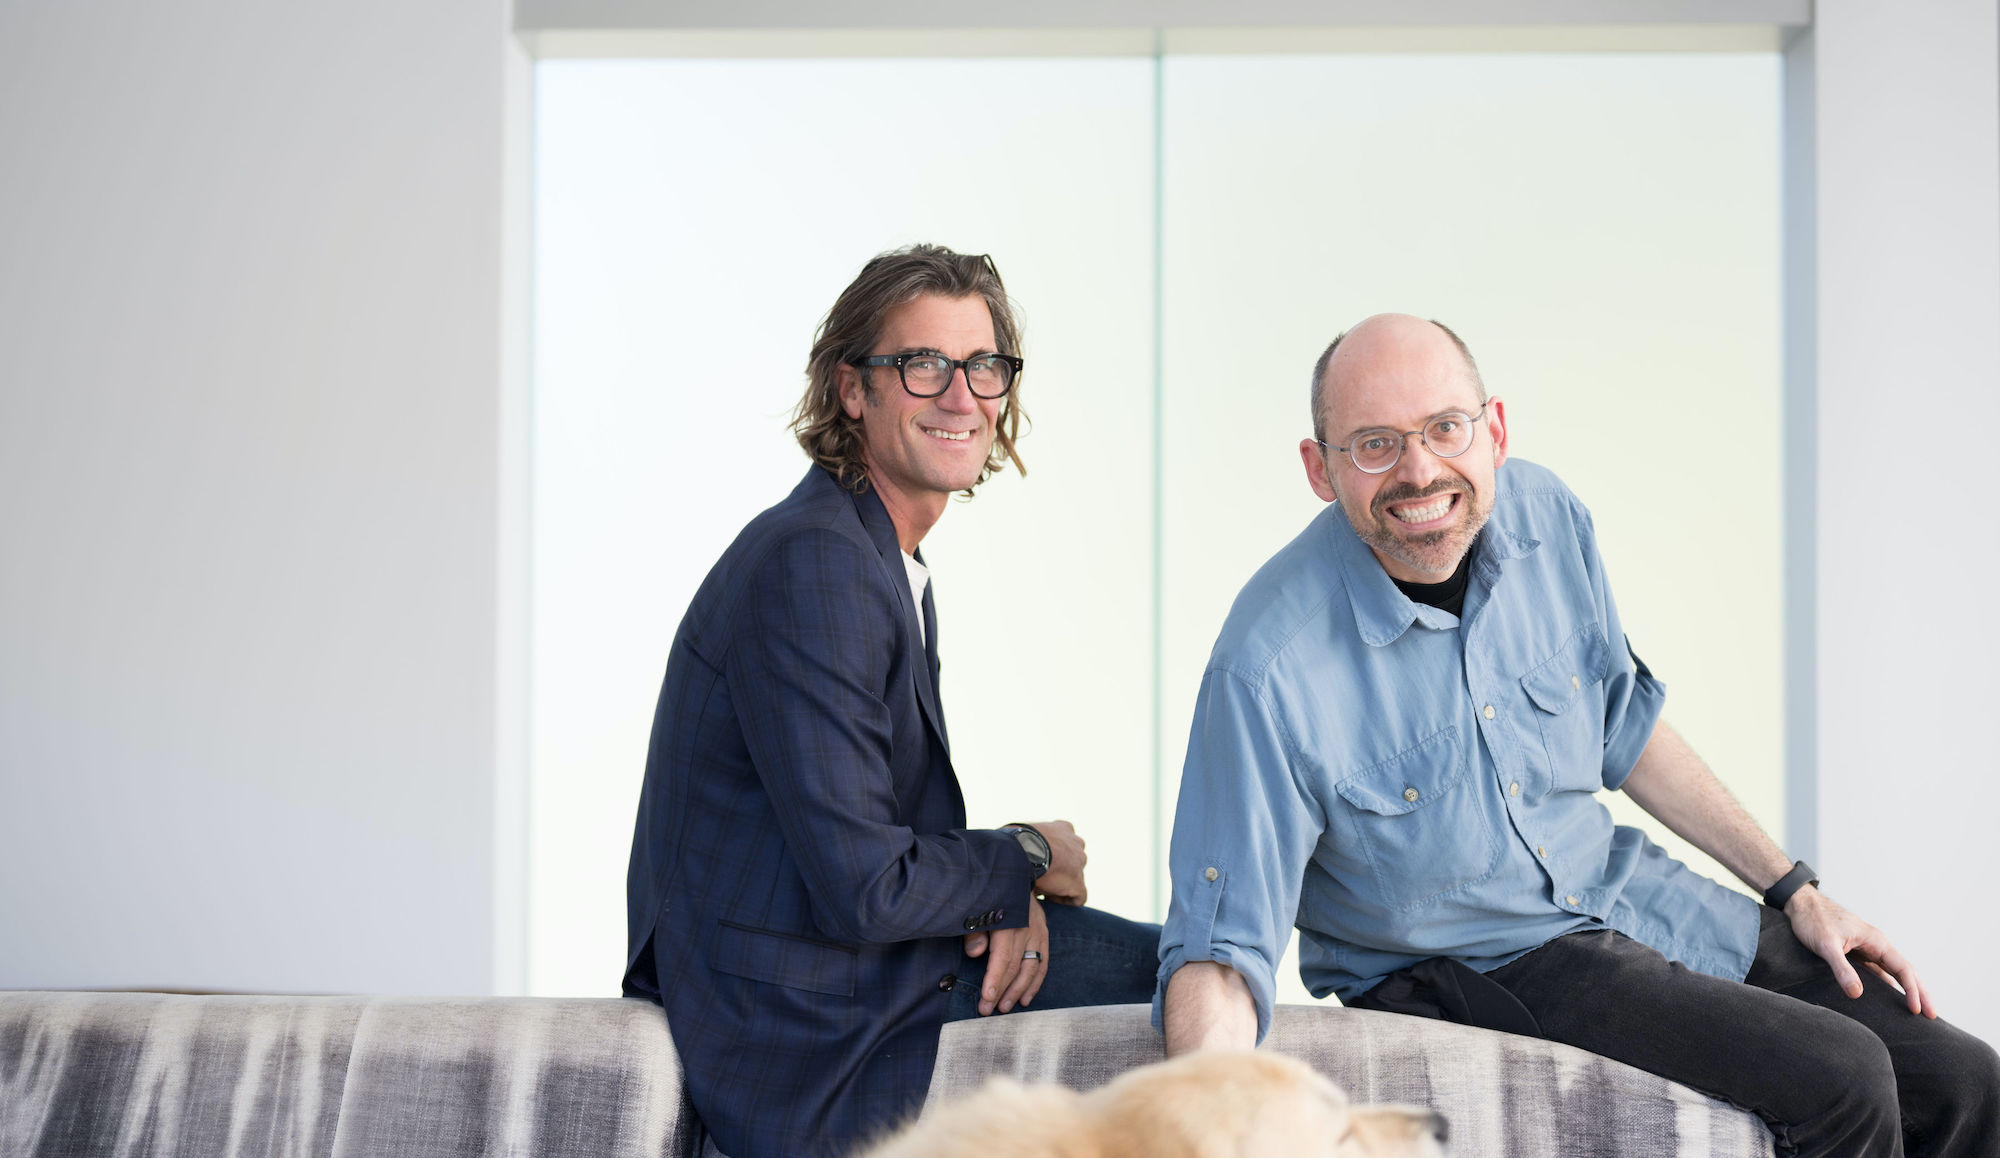 Rich Roll chats with Michael Greger MD